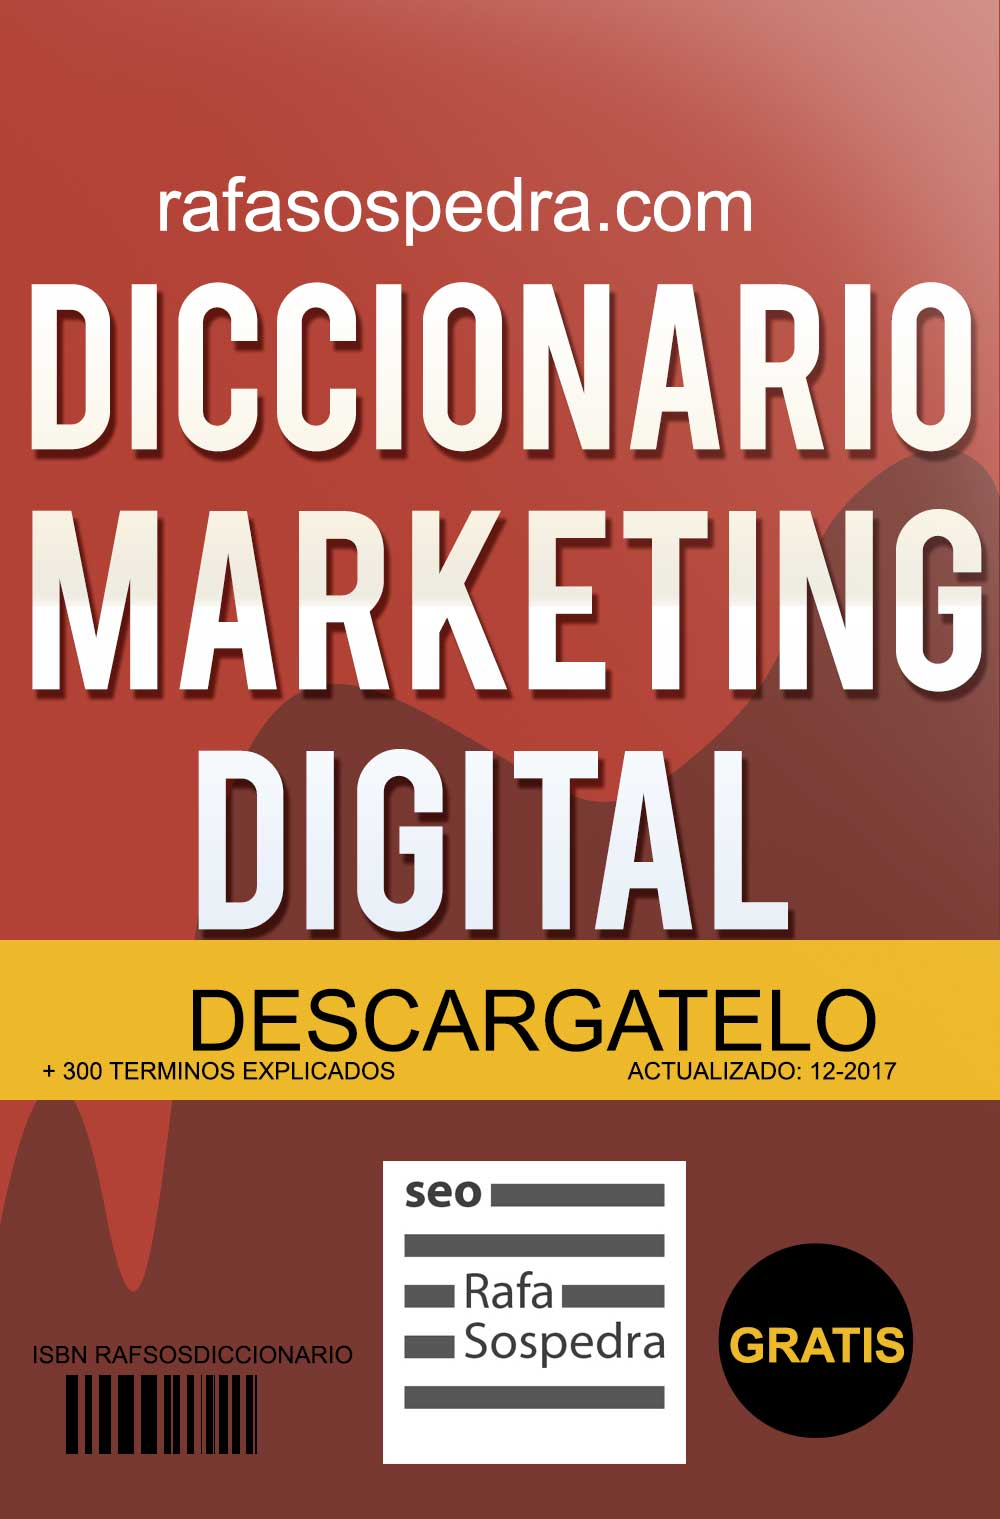 diccionario-marketing-07-17-1000.jpg